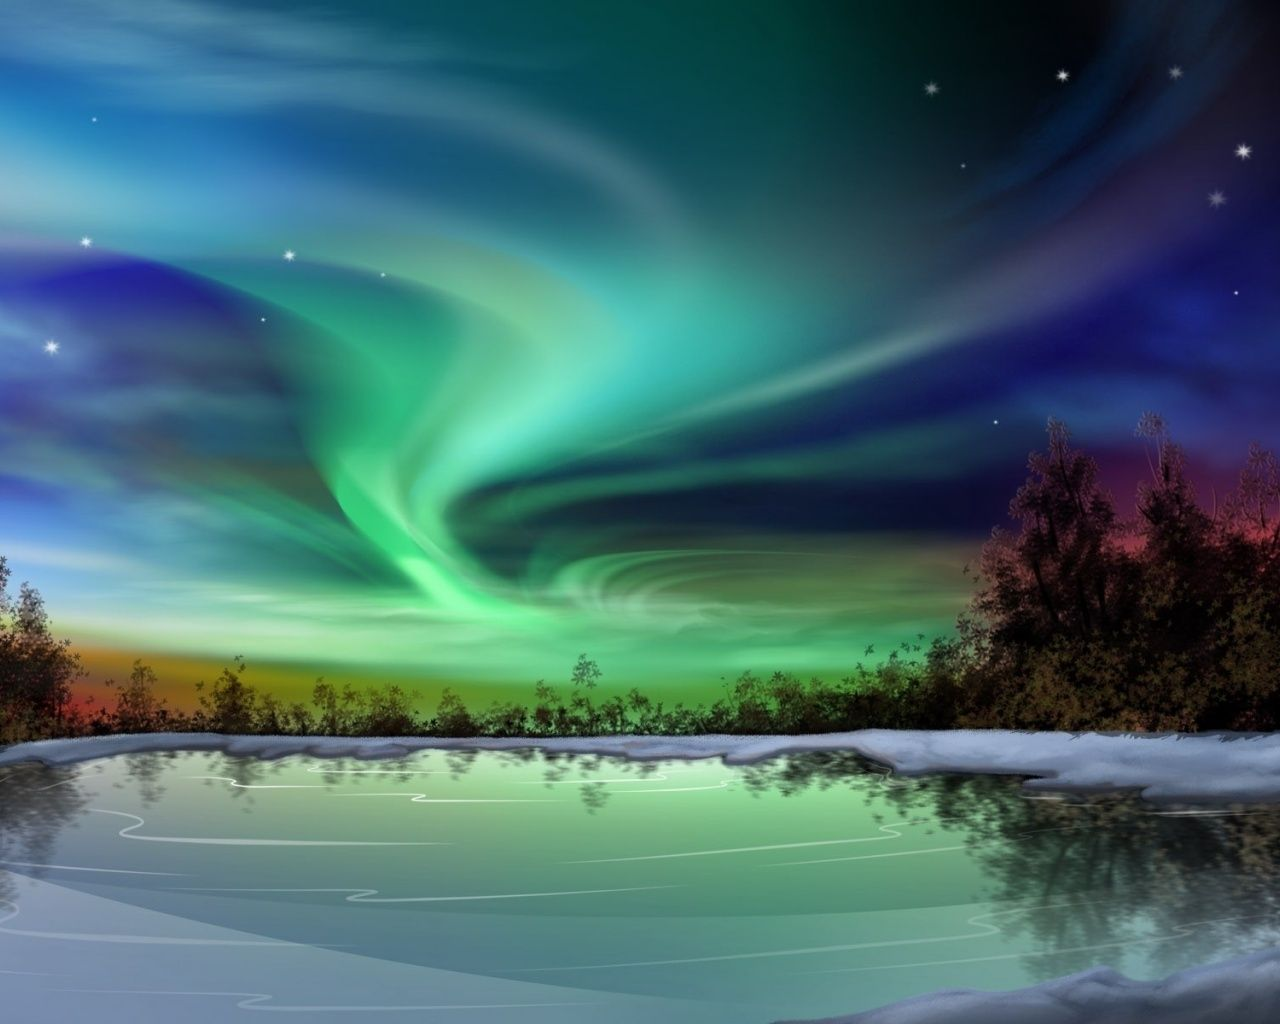 1280x1024 aurora borealis night winter fantasy game pinterest